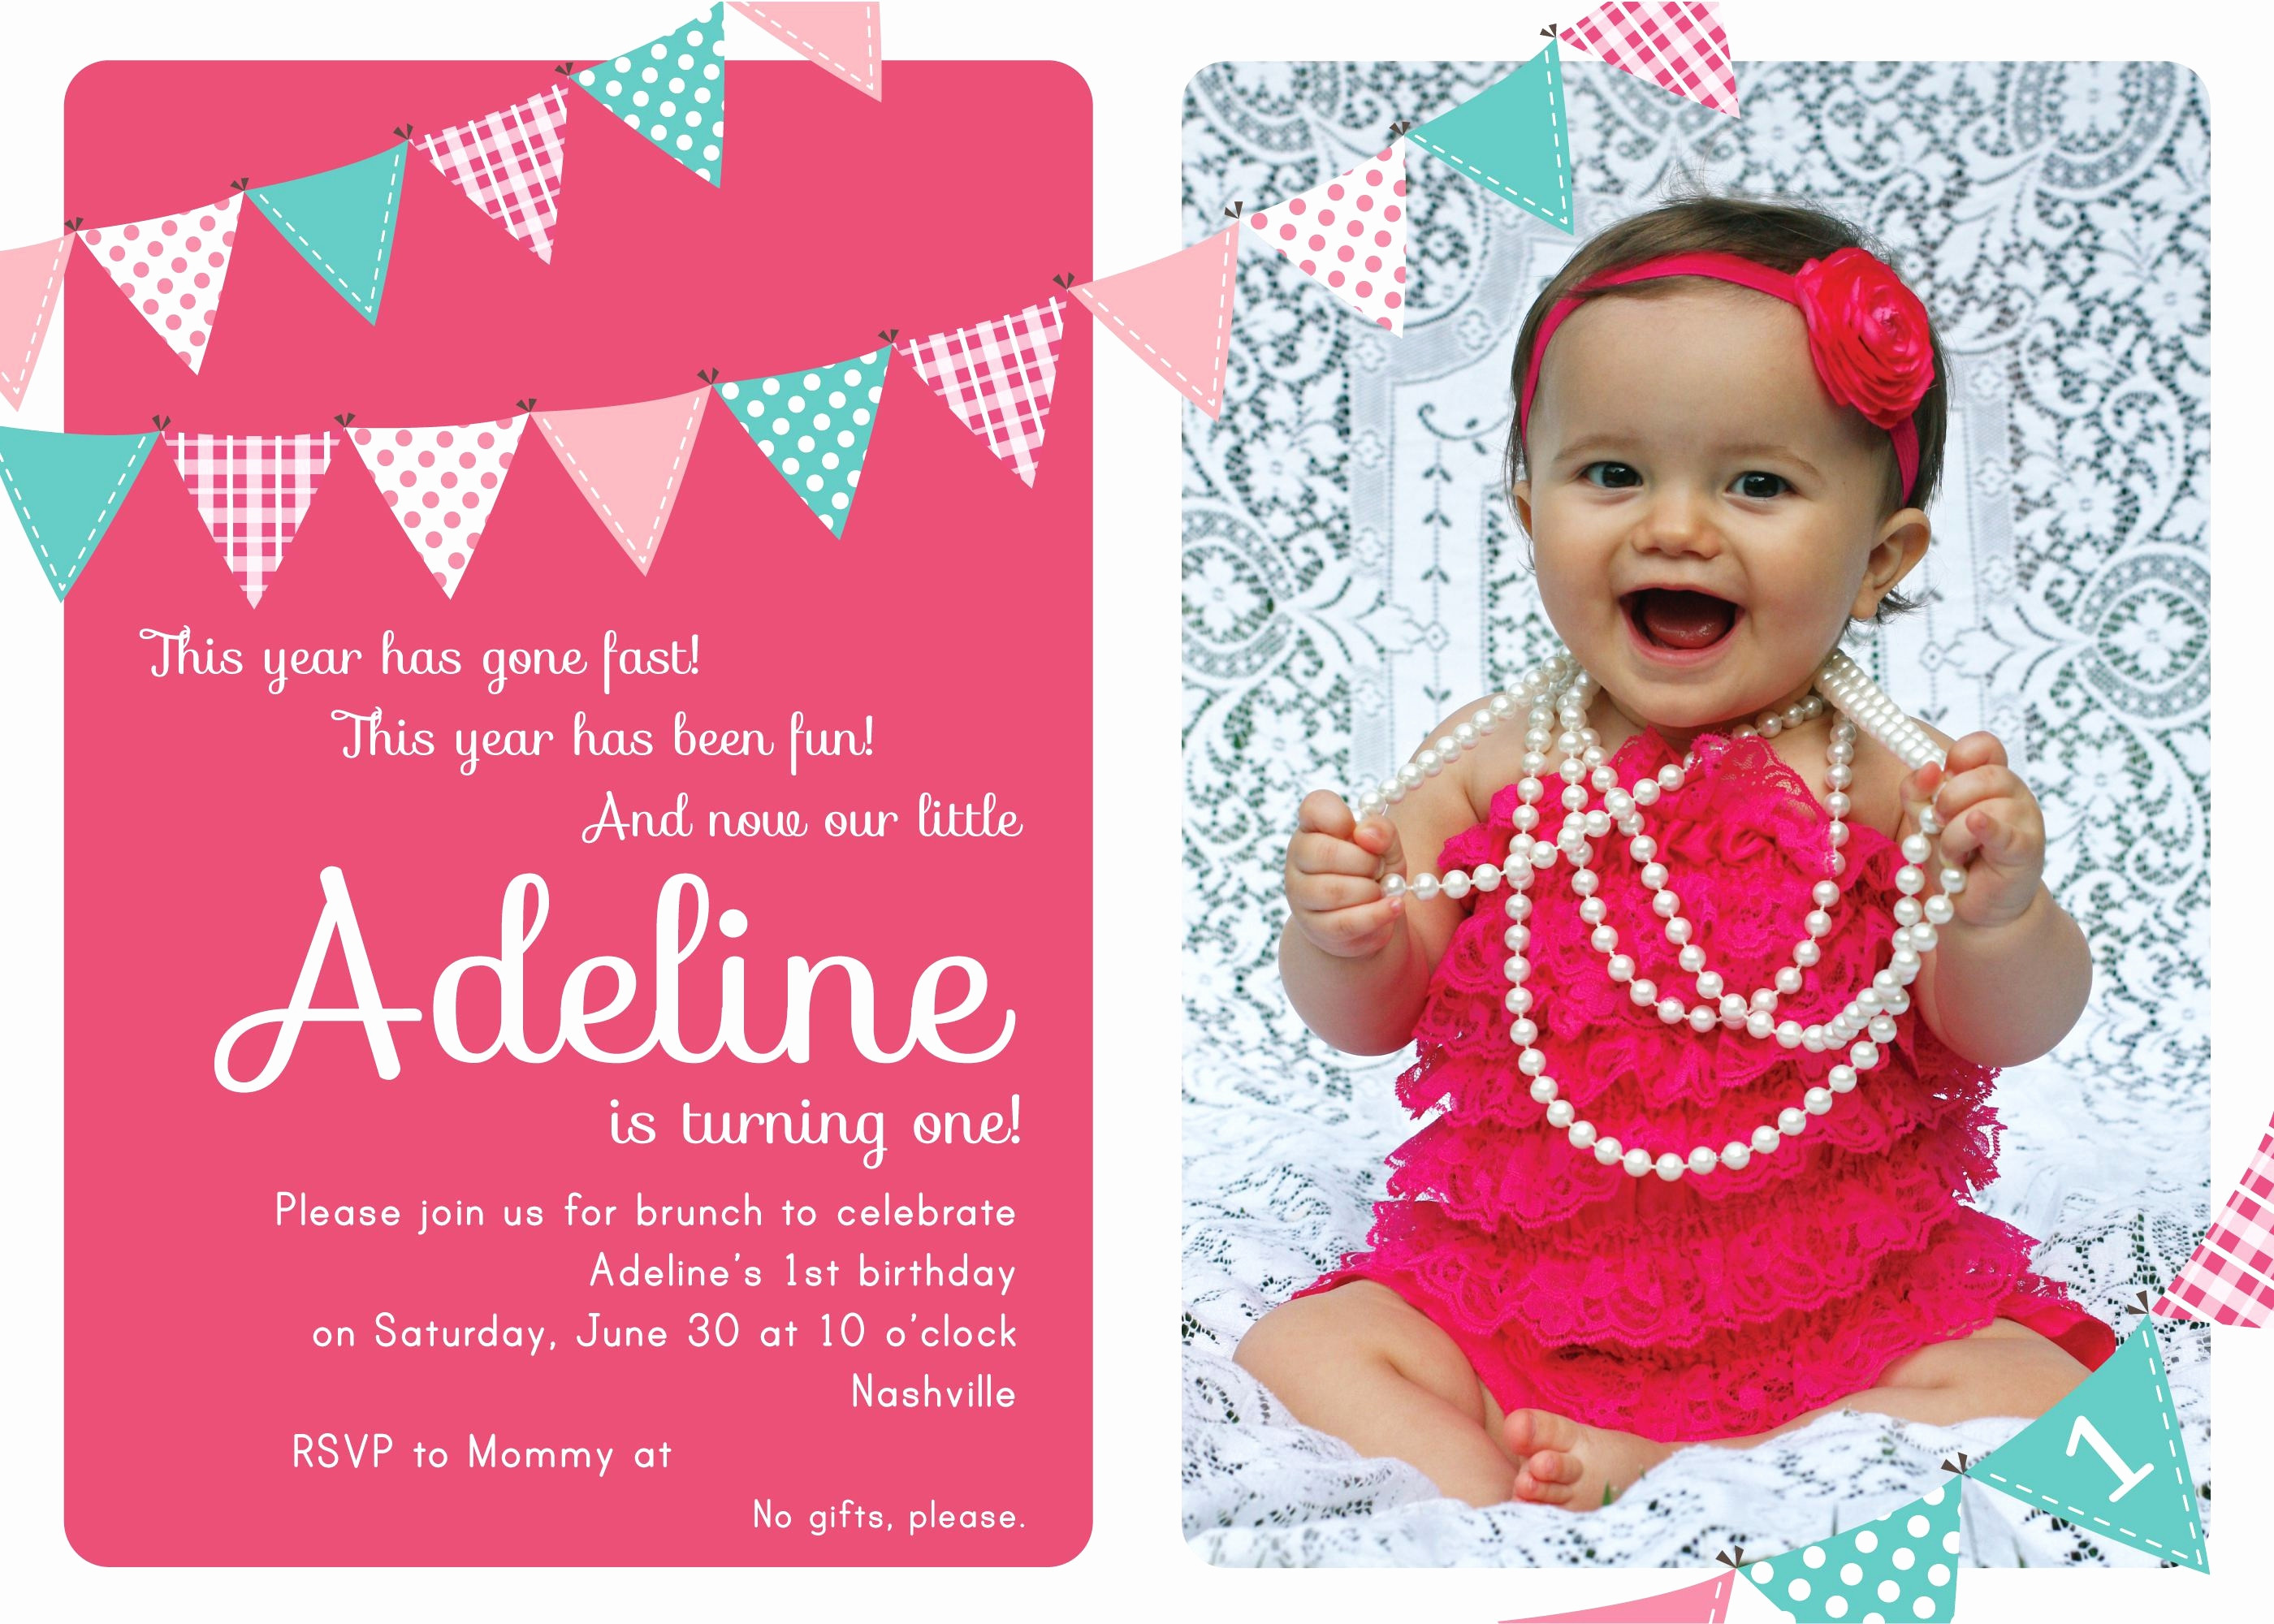 1st birthday invitation cards for daughter ; 1st-birthday-invitation-slogans-inspirational-40-awesome-sample-birthday-invitation-cards-for-kids-gallery-of-1st-birthday-invitation-slogans